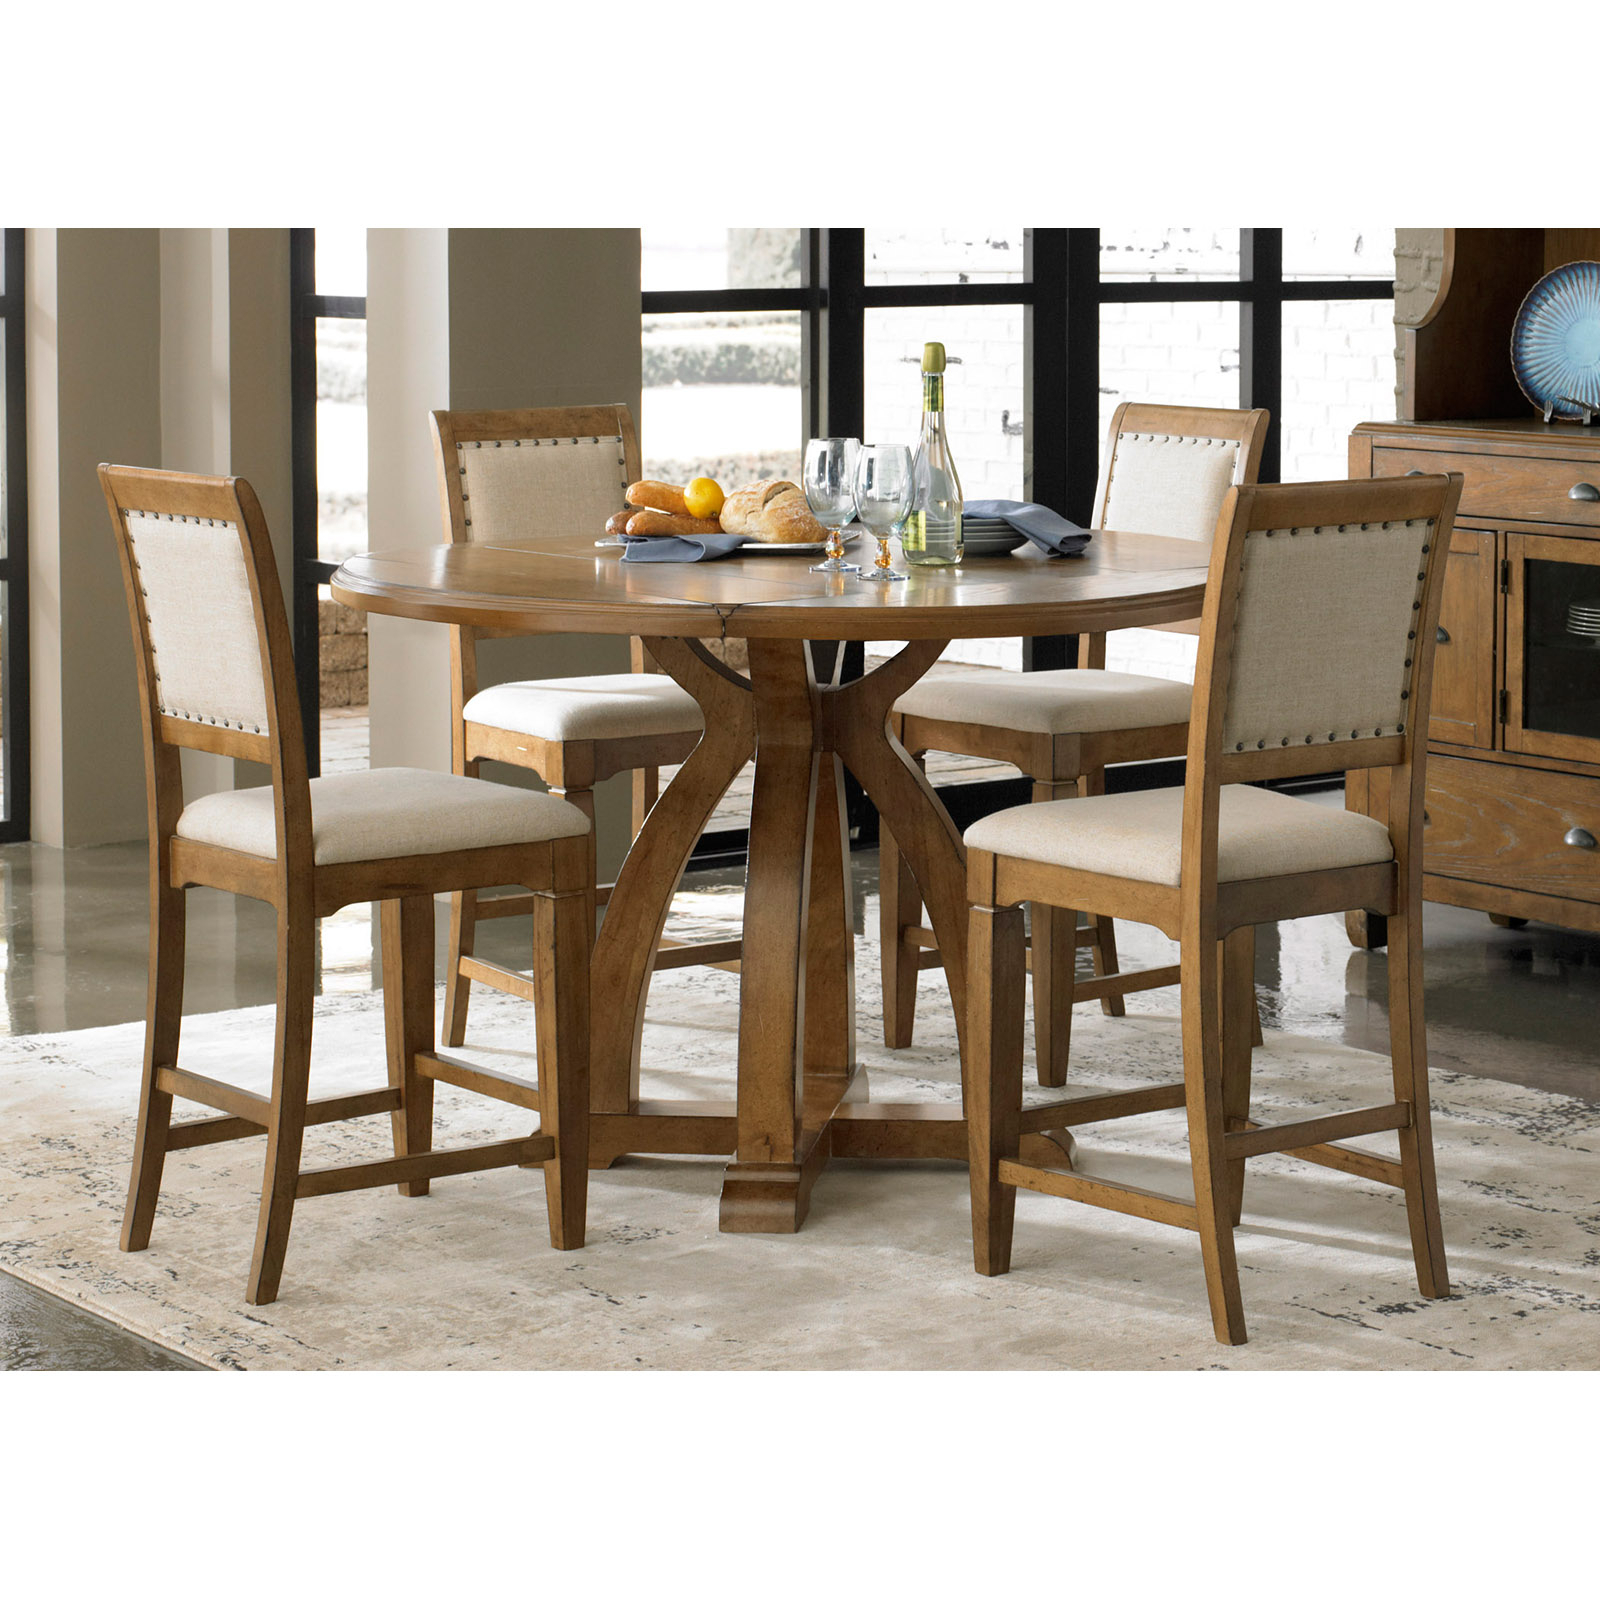 Liberty Furniture Stanton 5 Piece Counter Height Gathering Intended For Most Recently Released Counter Height Pedestal Dining Tables (View 10 of 15)